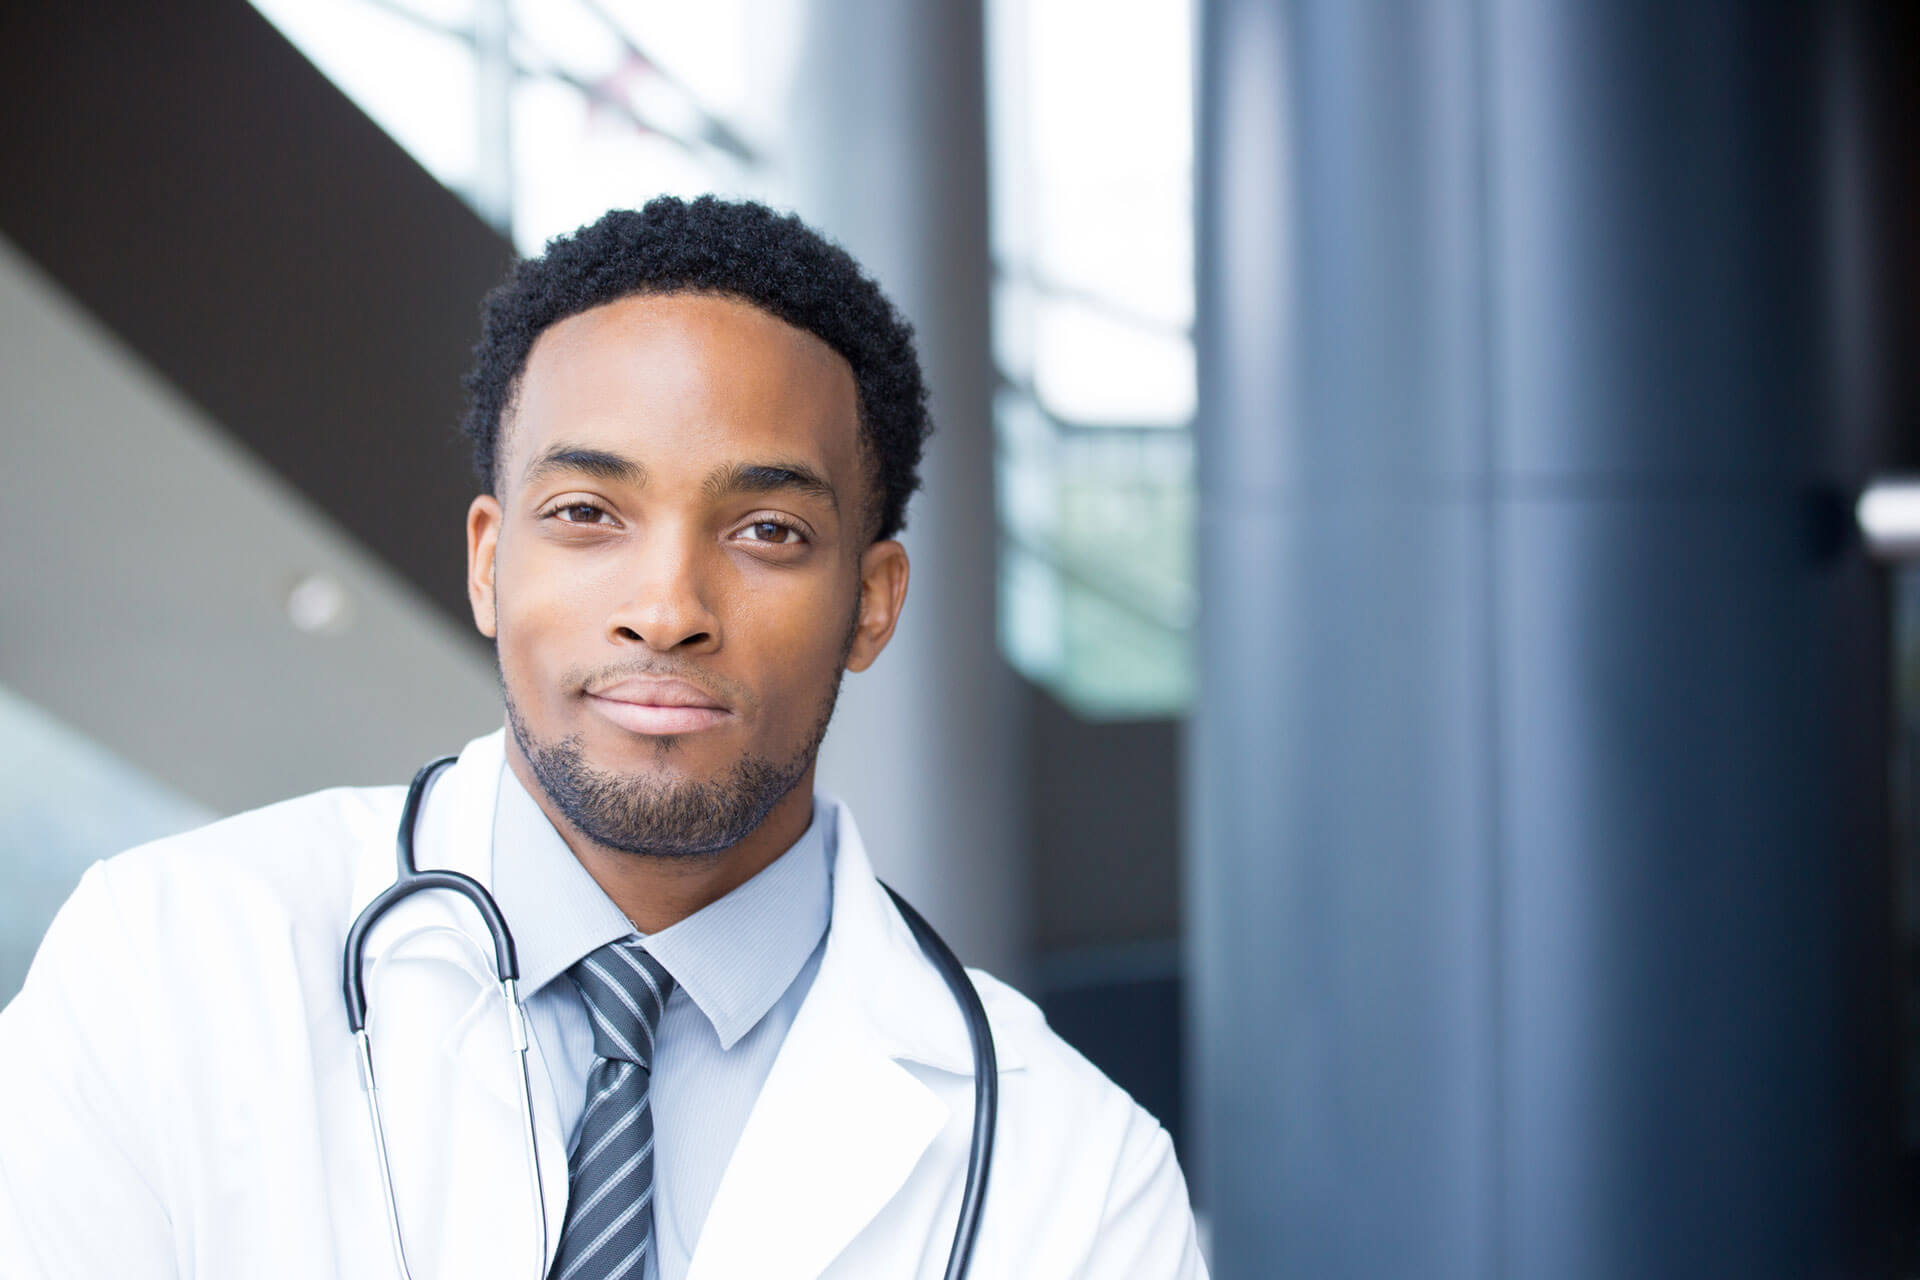 From Residency to Attendingship: Tips for Success